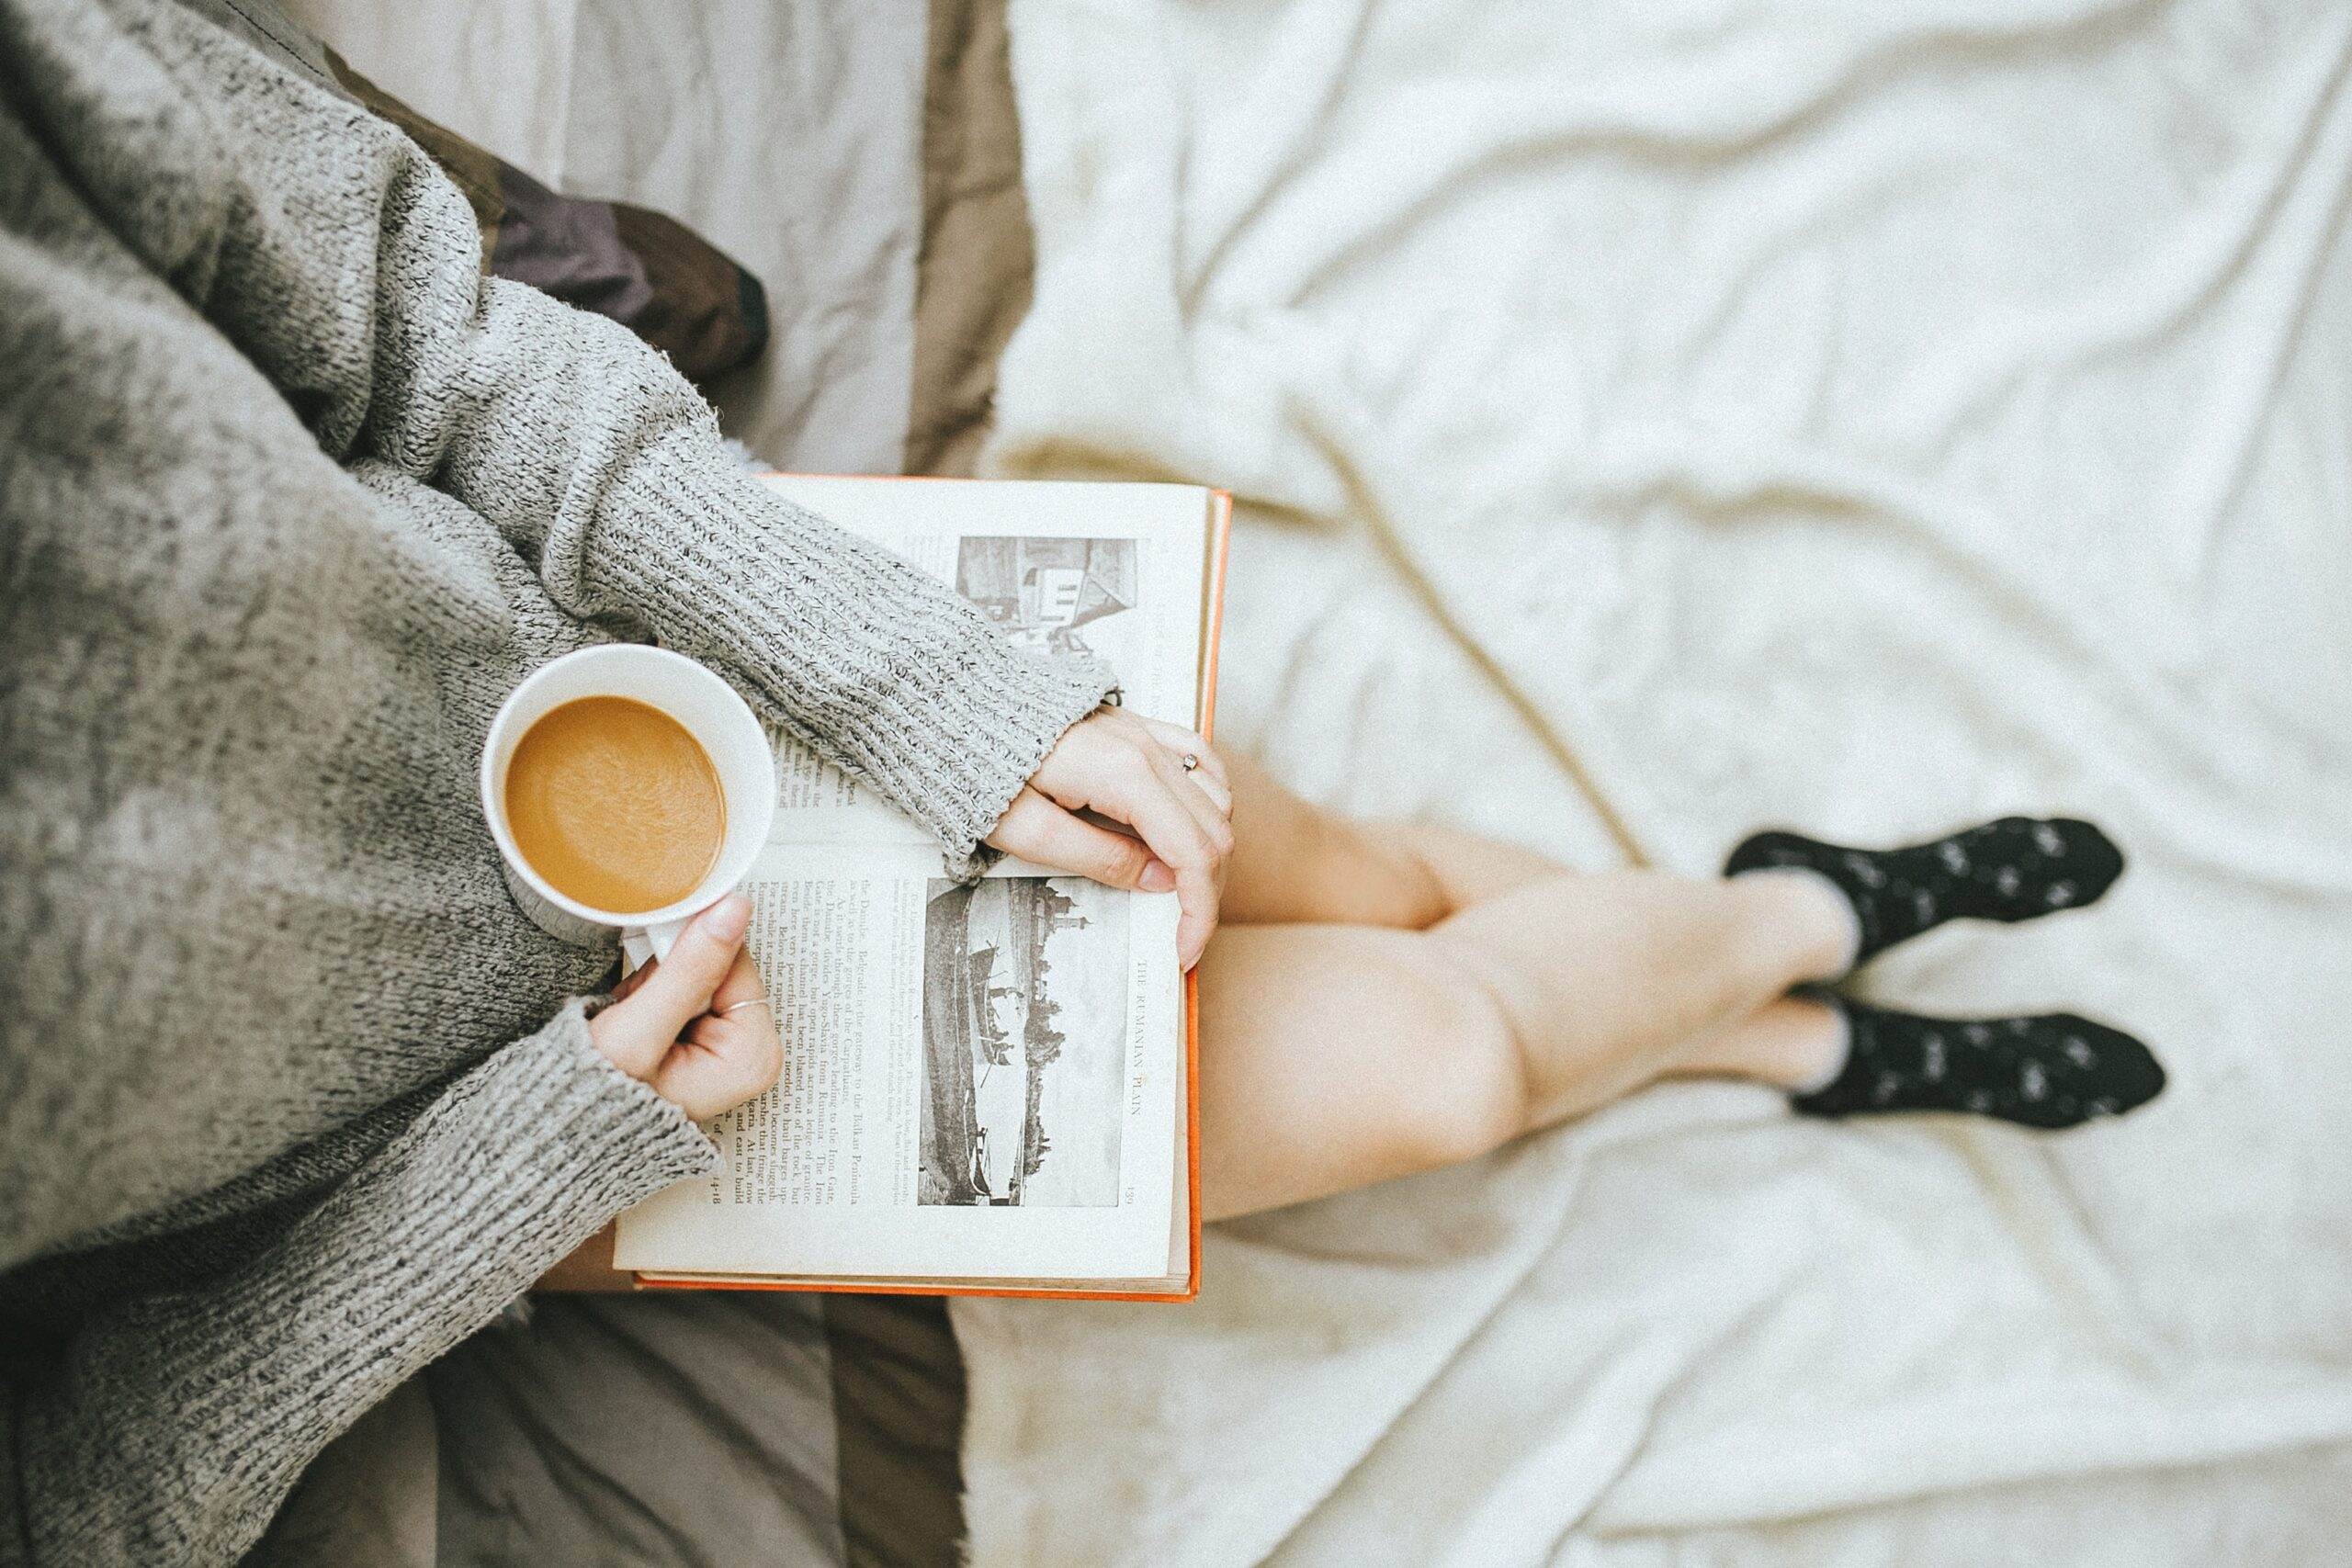 a person reading a book while drinking coffee